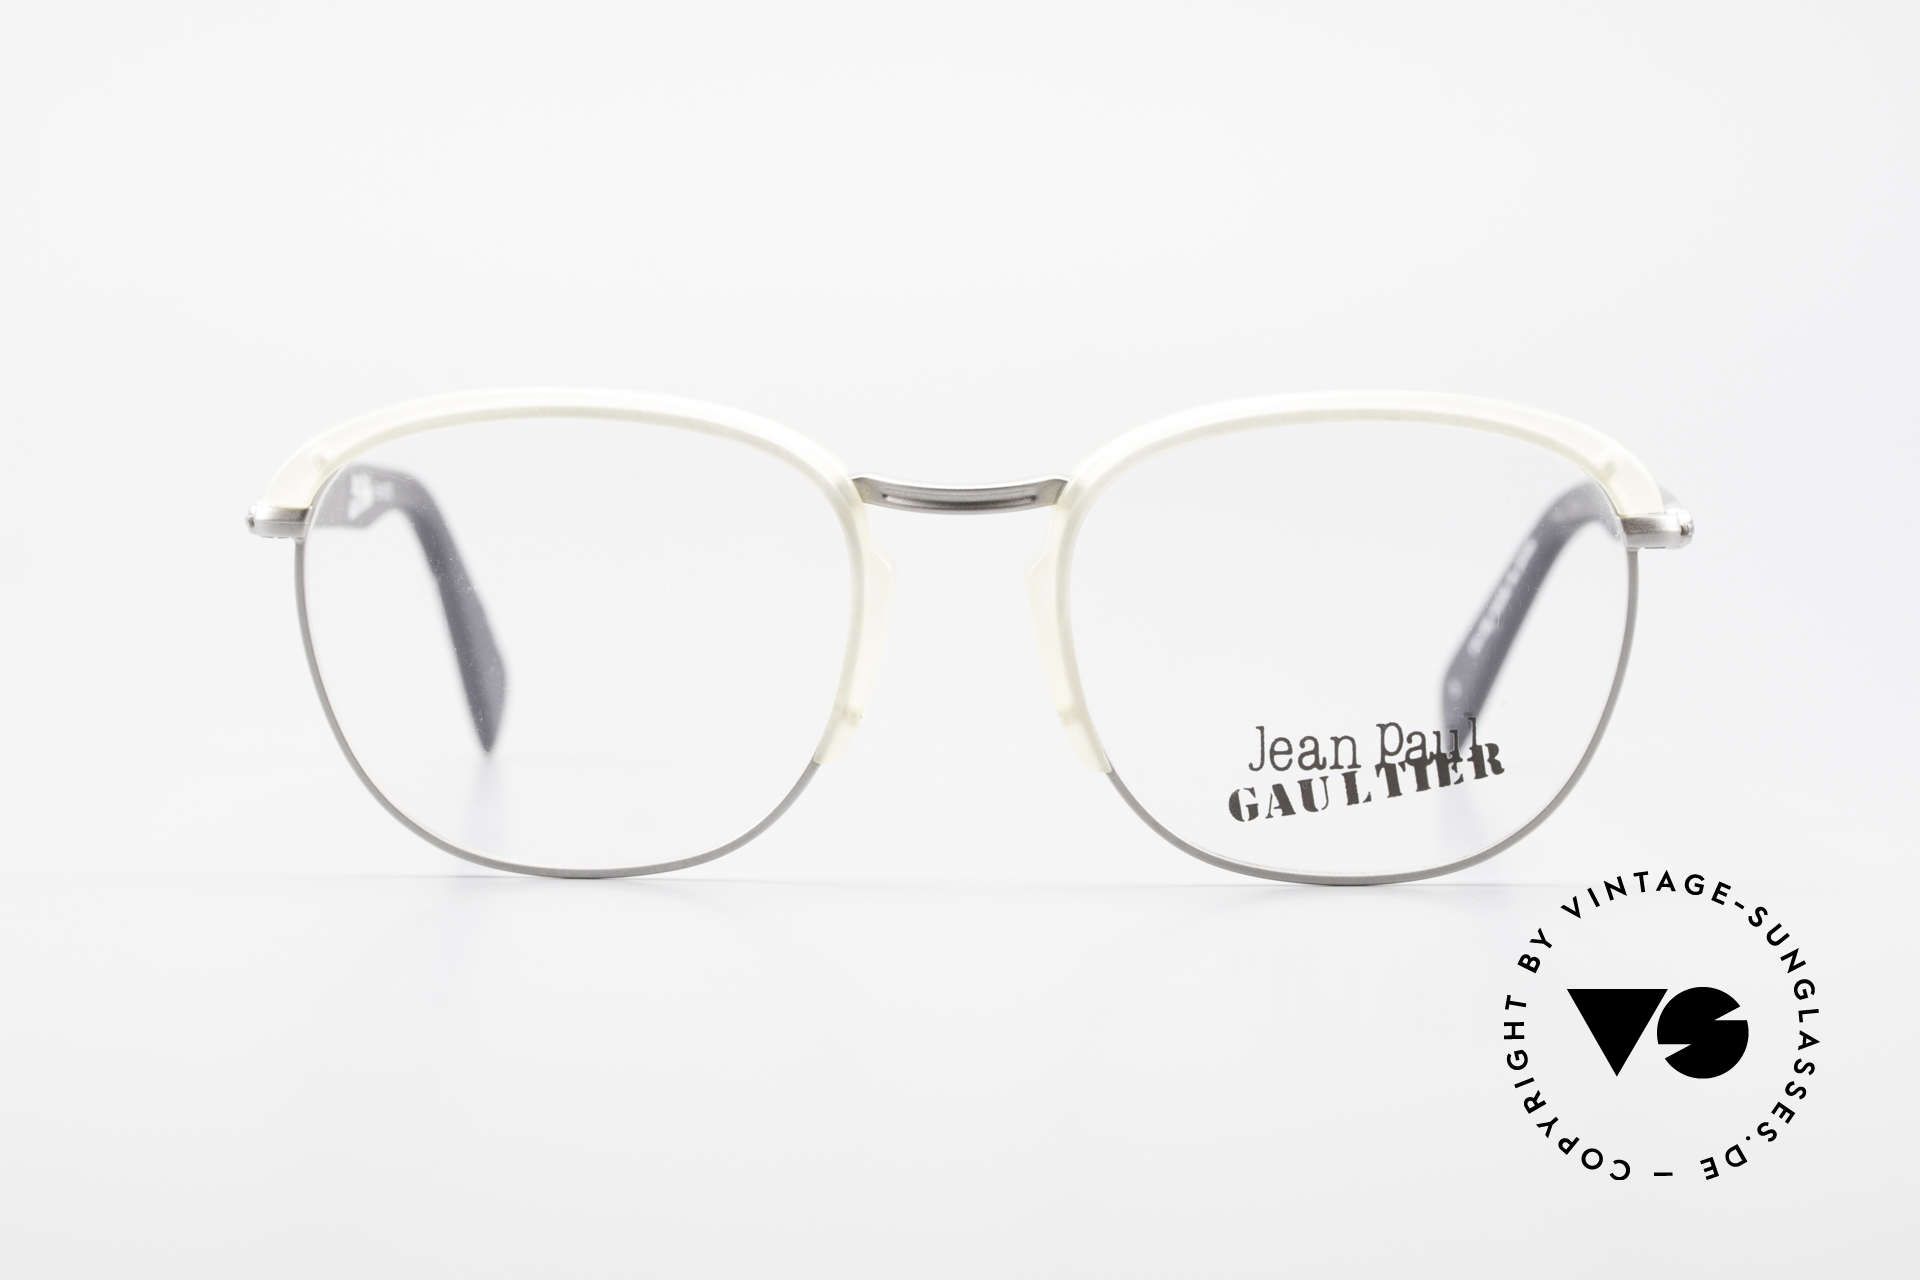 Jean Paul Gaultier 55-1273 Old Vintage 90's Specs JPG, lightweight frame and very pleasant to wear, Made for Men and Women